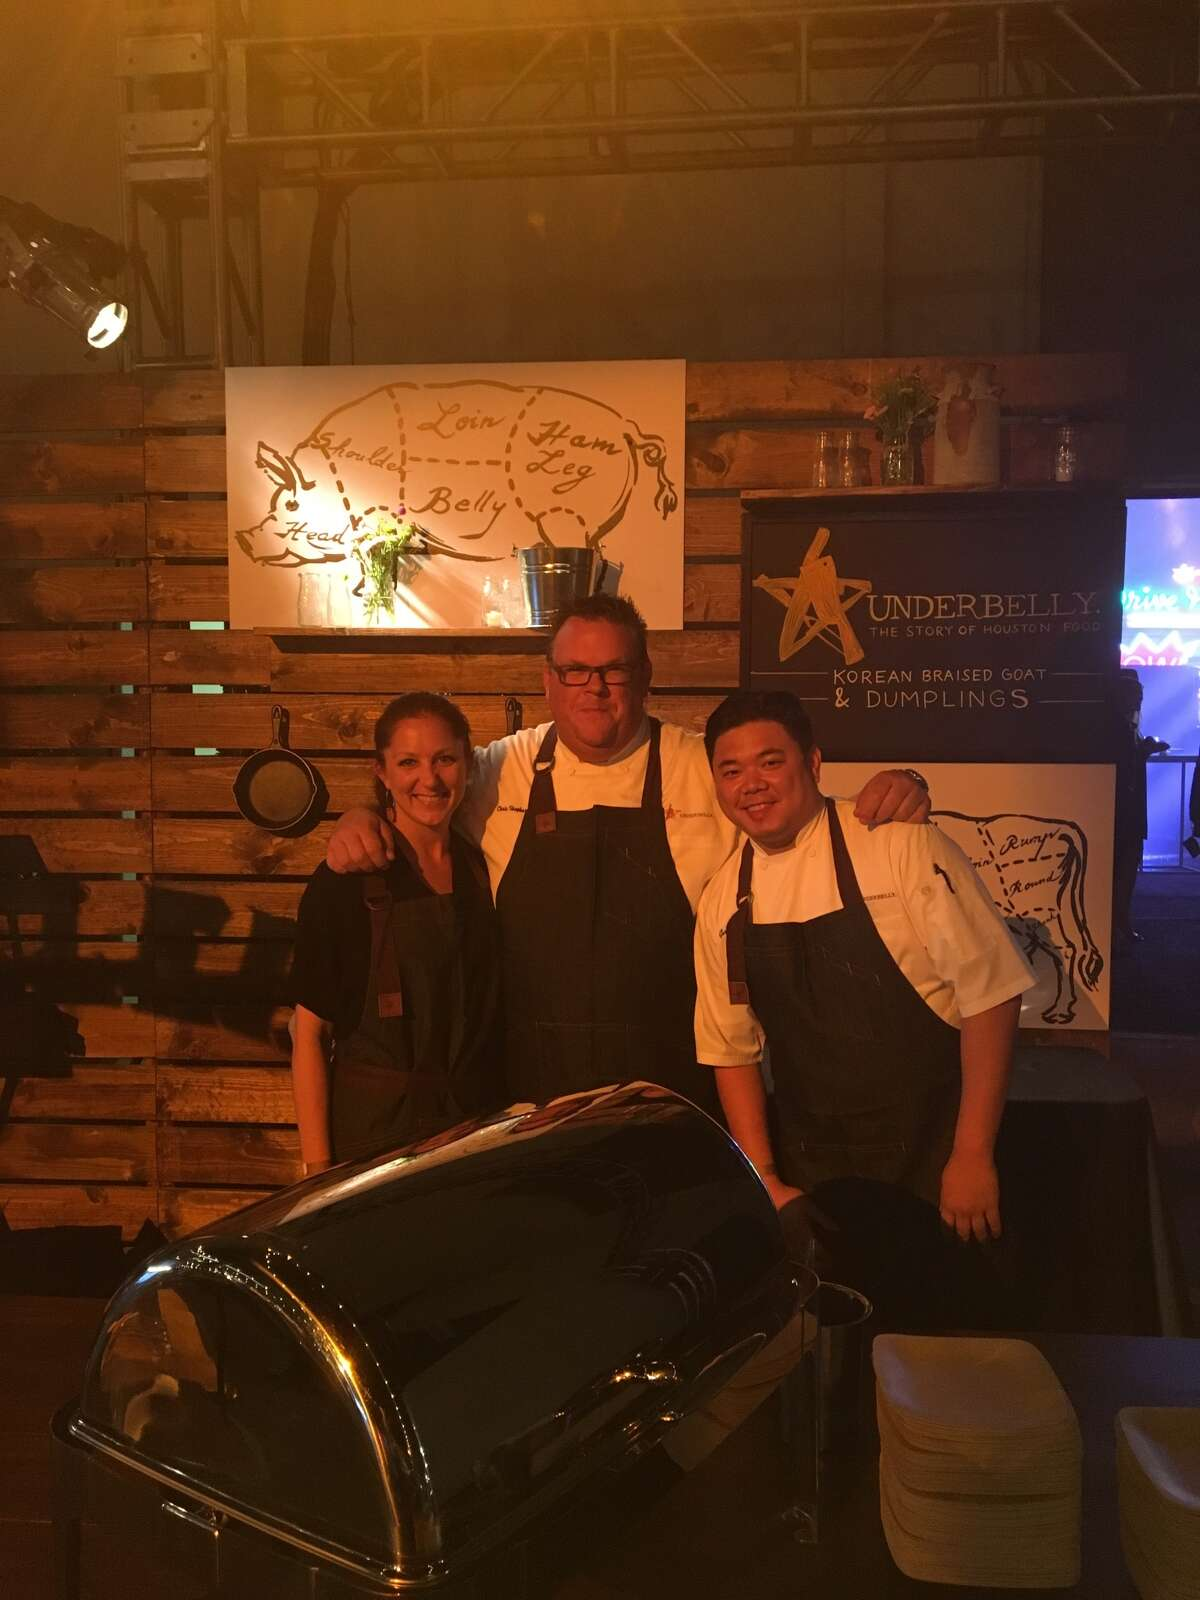 Lindsey Brown, Chris Shepherd (center), and Underbelly sous chef Gary Ly are pictured at Jimmy Kimmel's 2016 Emmy after party on Sunday, Sept. 18, 2016. >>KEEP CLICKING TO SEE WHAT ELSE IS COOKING AT UNDERBELLY.